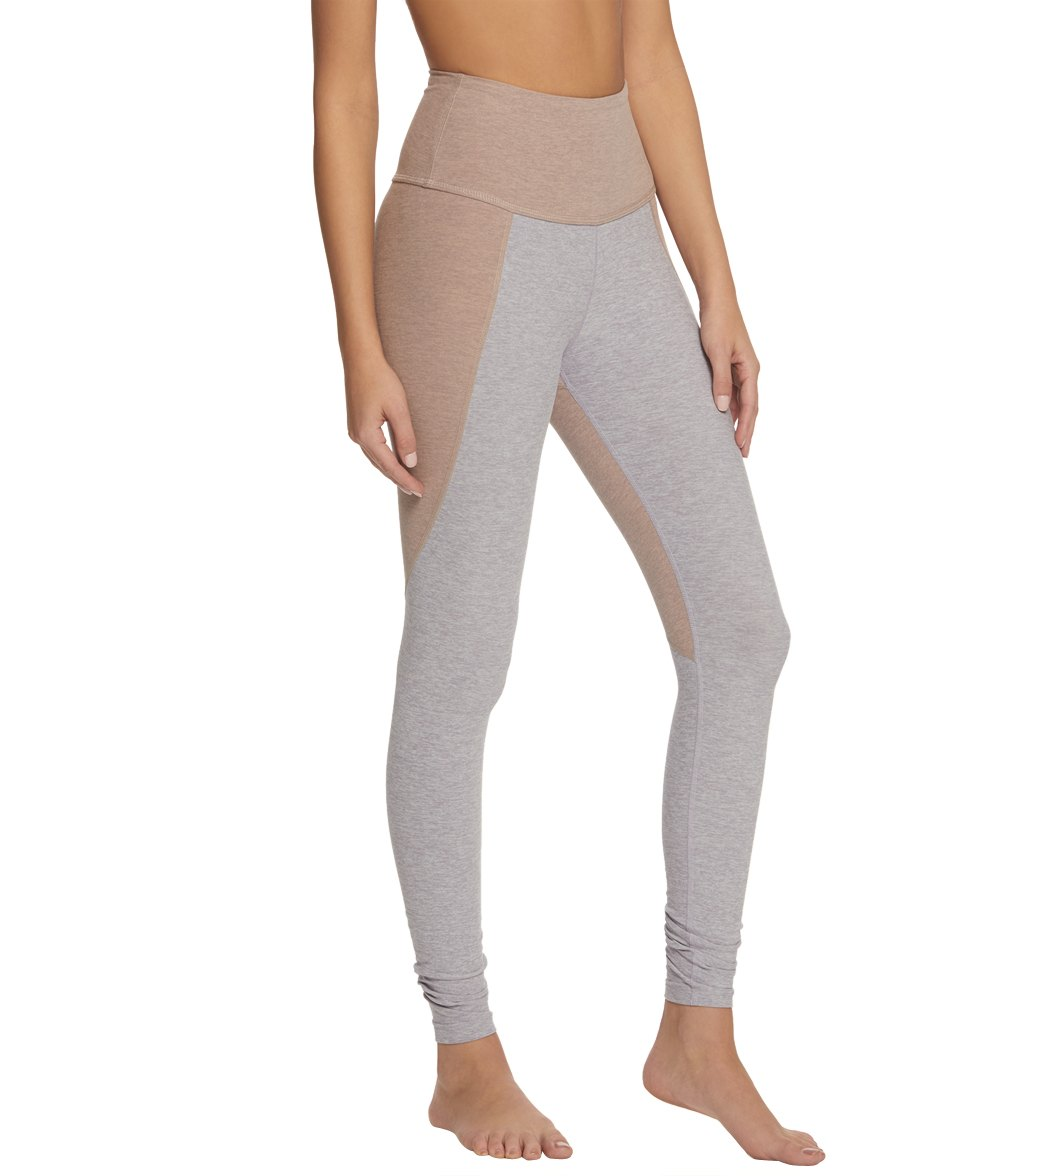 d6afcccb2ef09 Beyond Yoga Spacedye Off Duty High Waisted Yoga Leggings at YogaOutlet.com  - Free Shipping